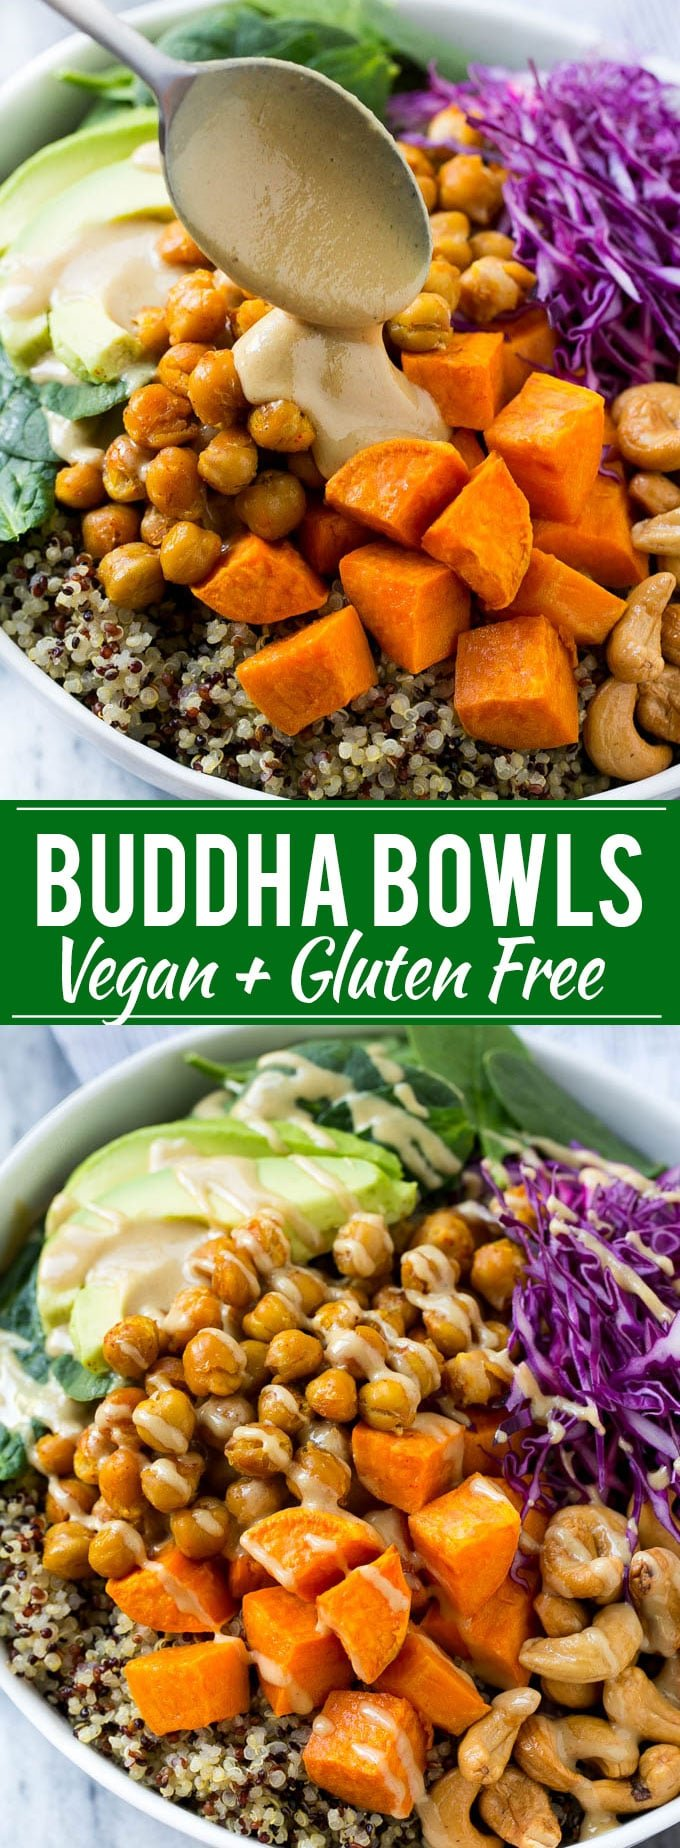 Buddha Bowl Recipe | Vegan Buddha Bowl | Quinoa Bowl | Sweet Potato Recipe | Quinoa Recipe